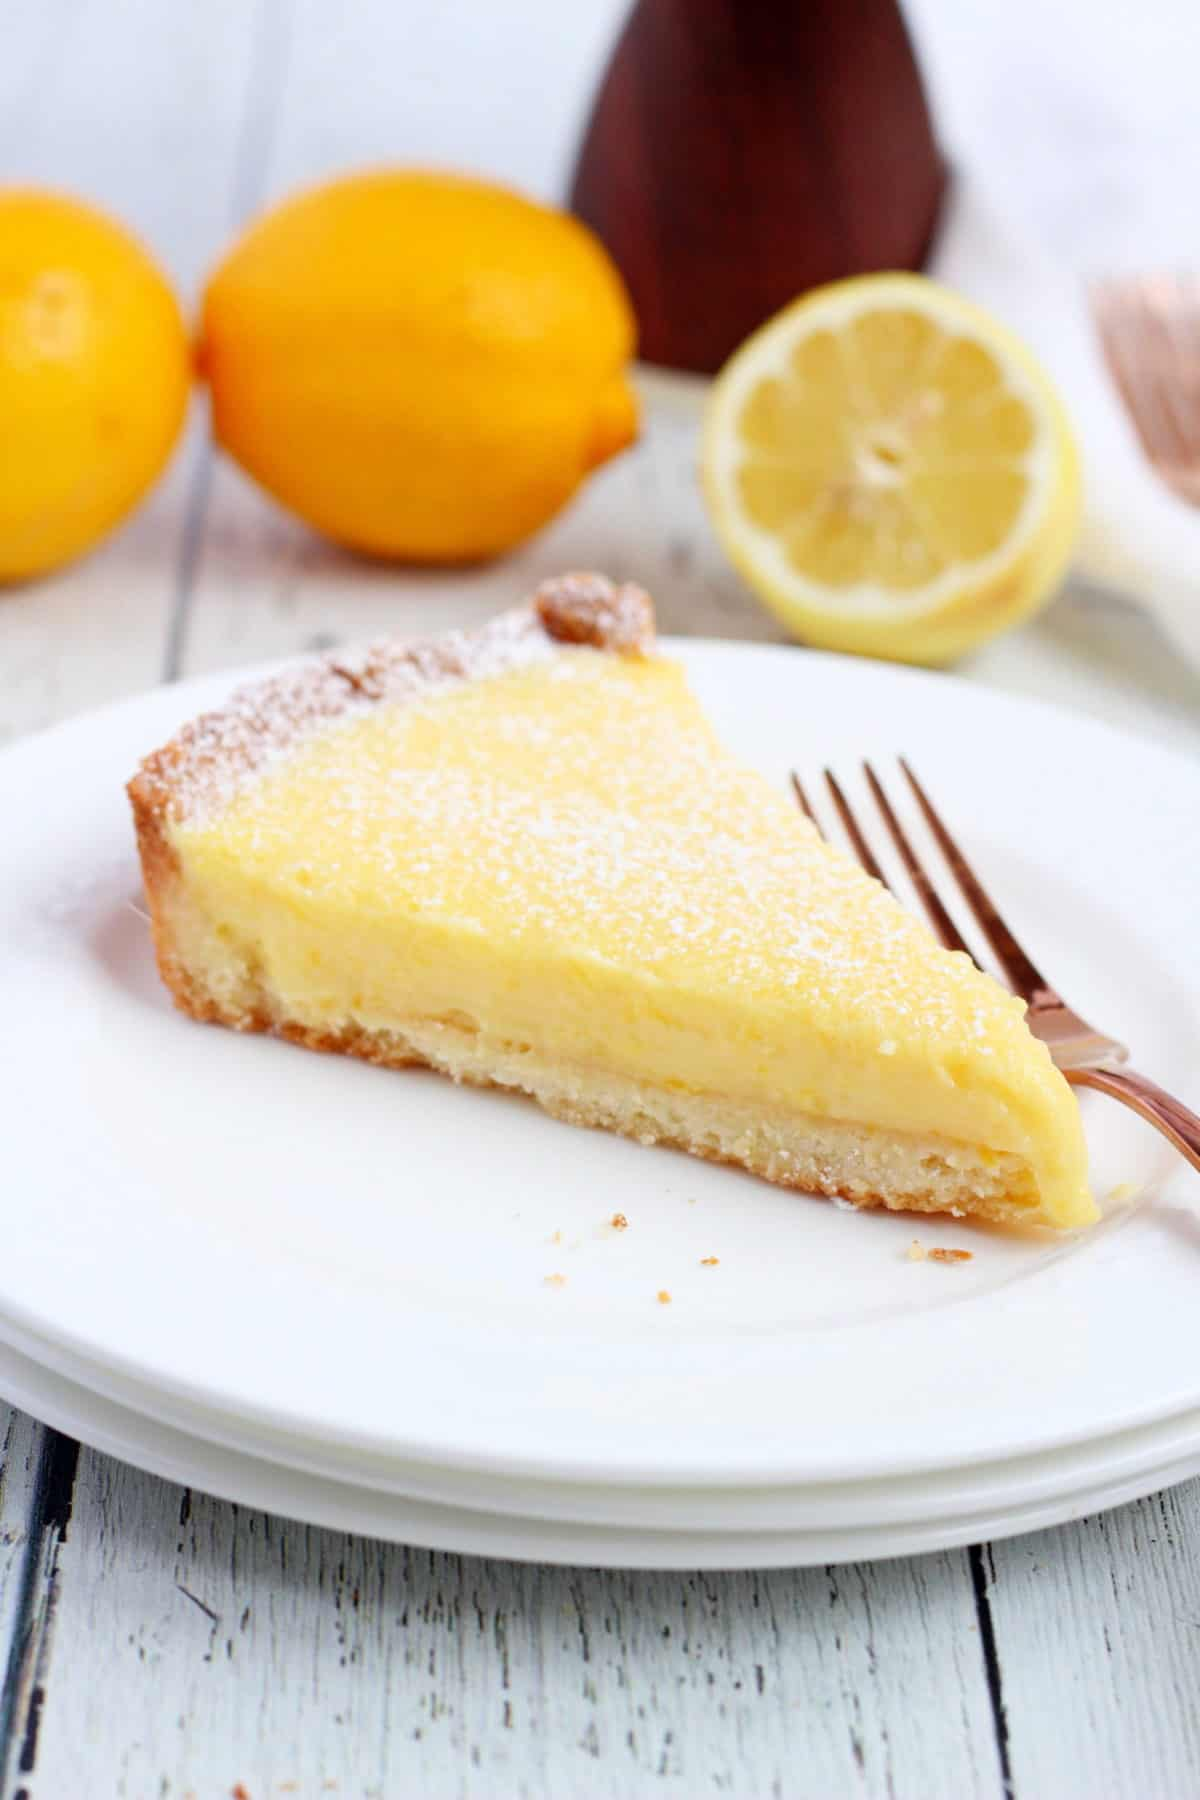 Lemon tart slice close up